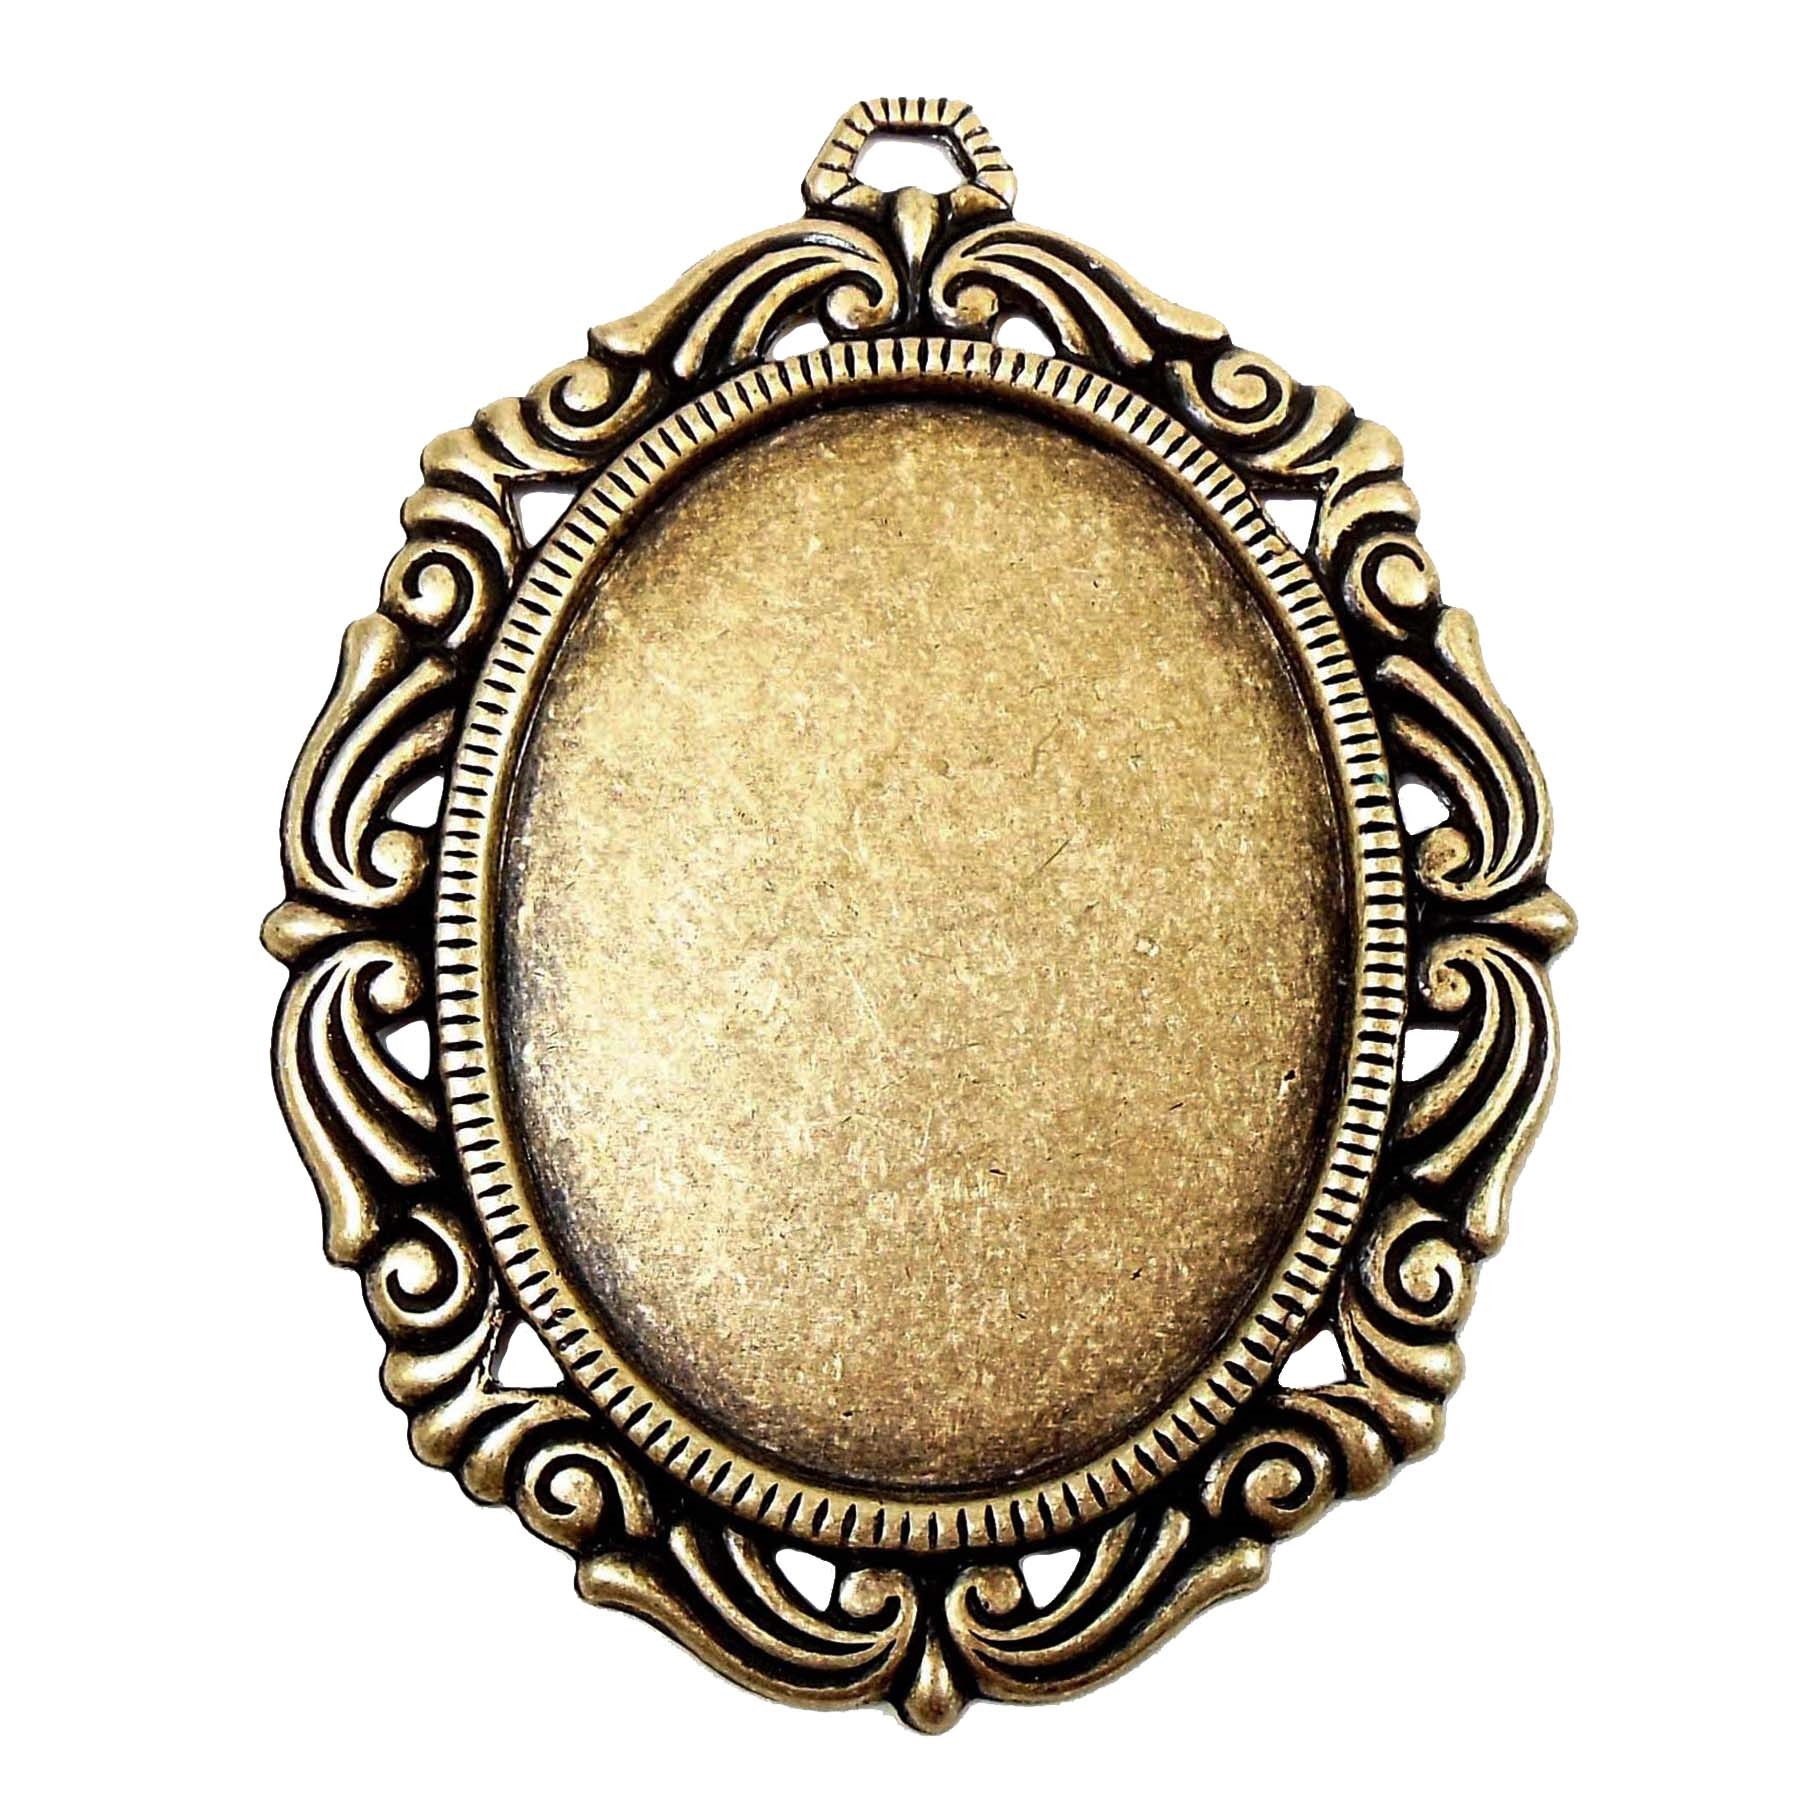 victorian pendant mount, brass ox, antique brass, cameo mount, stone mount, 40x30mm mount, victorian mount, vintage supplies, jewelry making, jewelry supplies, brass stamping, mount, pendant mount, victorian edge mount, pendant, 03821